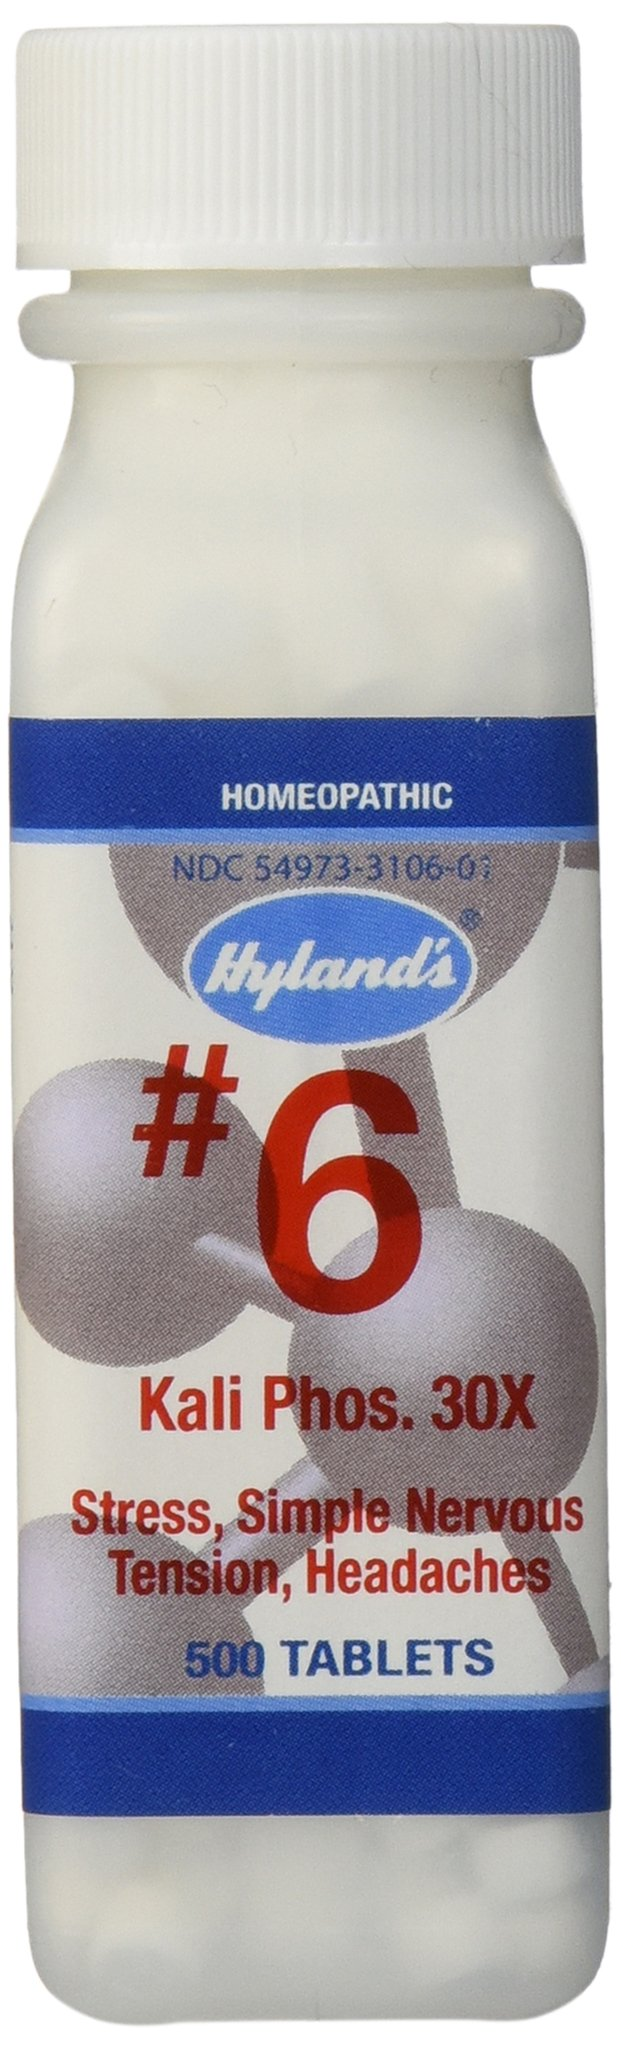 Hylands Cell Salts #6 Kali Phosphoricum 30X Tablets, Natural Relief of Stress, Simple